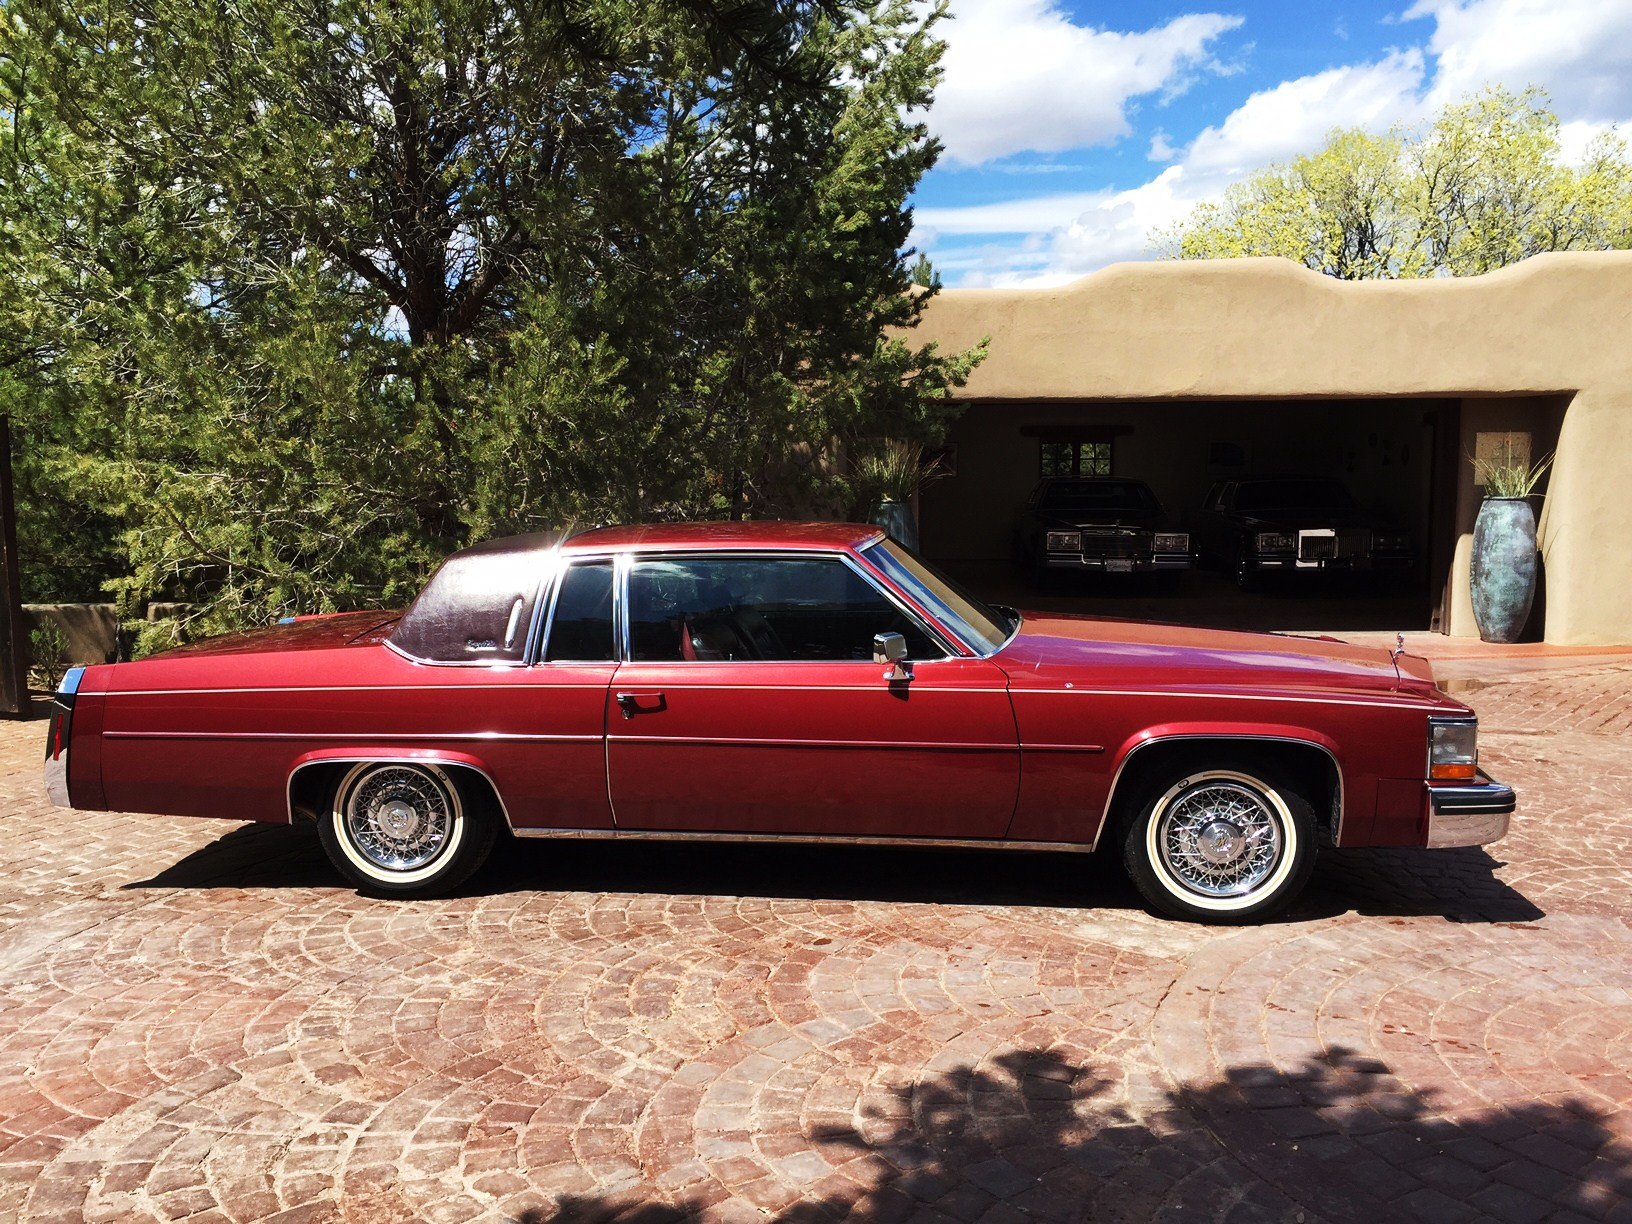 1980 Cadillac Coupe Deville 6 0 Liter With 46 000 Miles